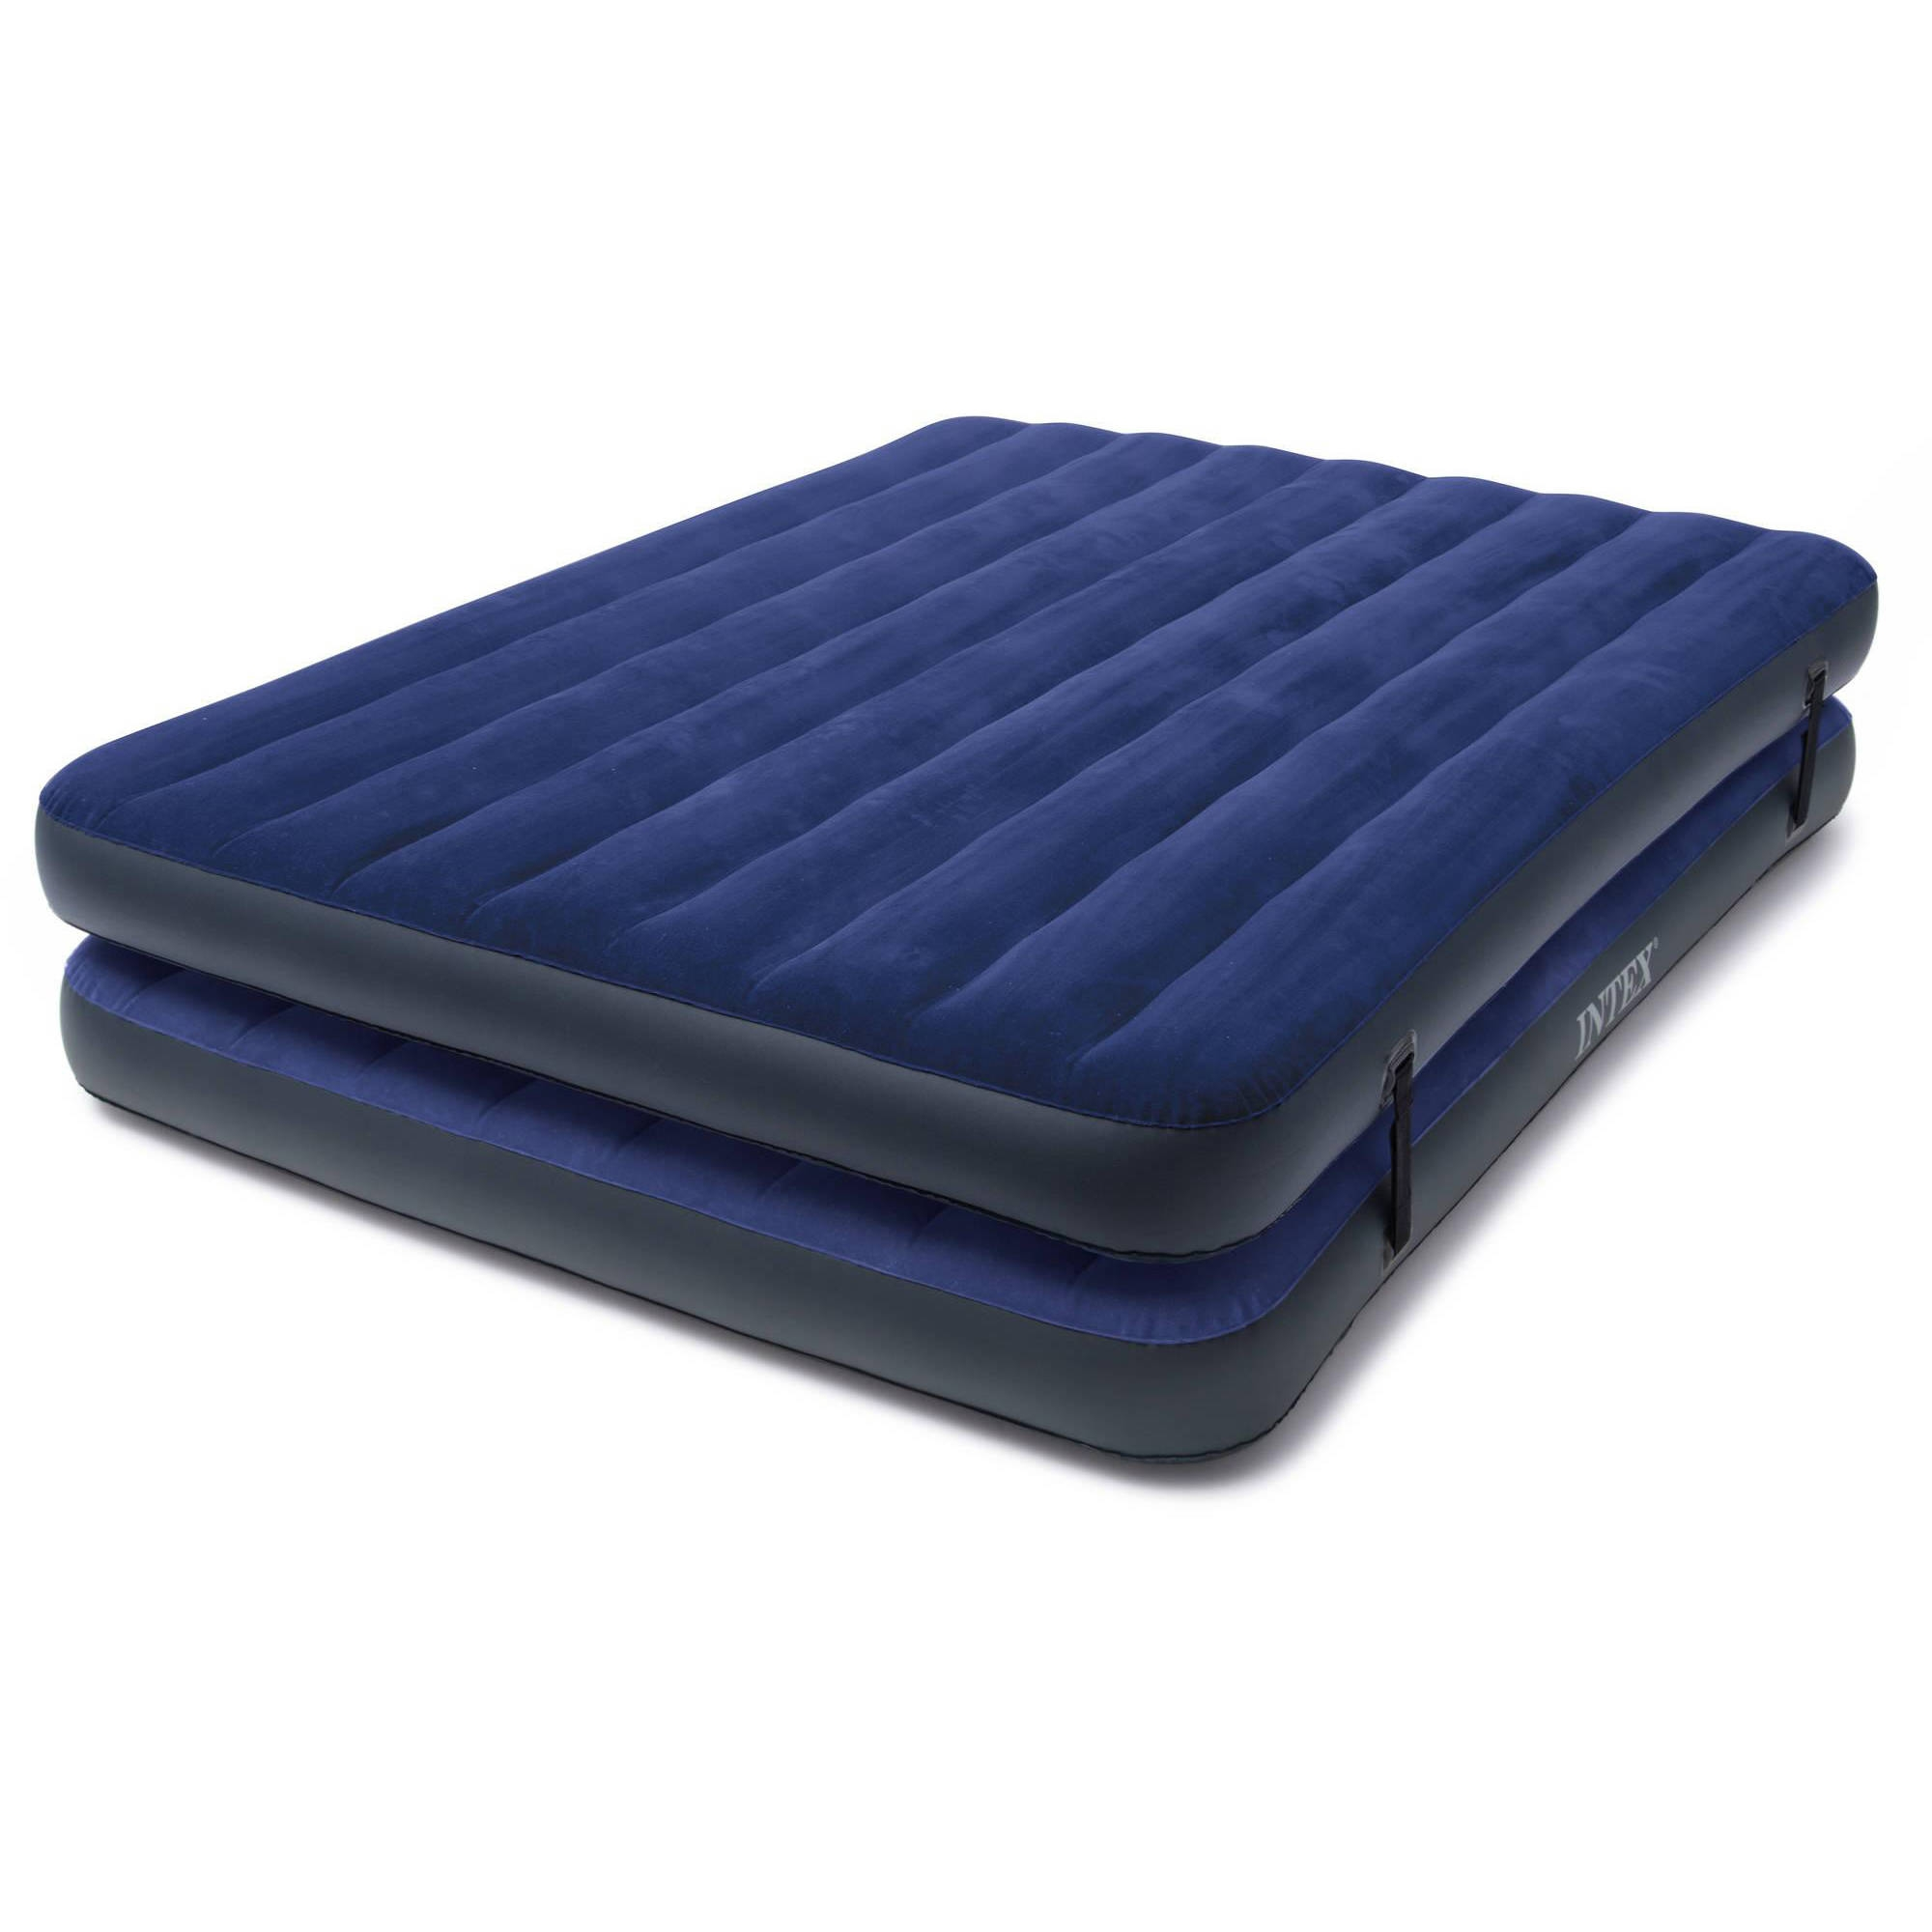 Bed Frame For Inflatable Mattress